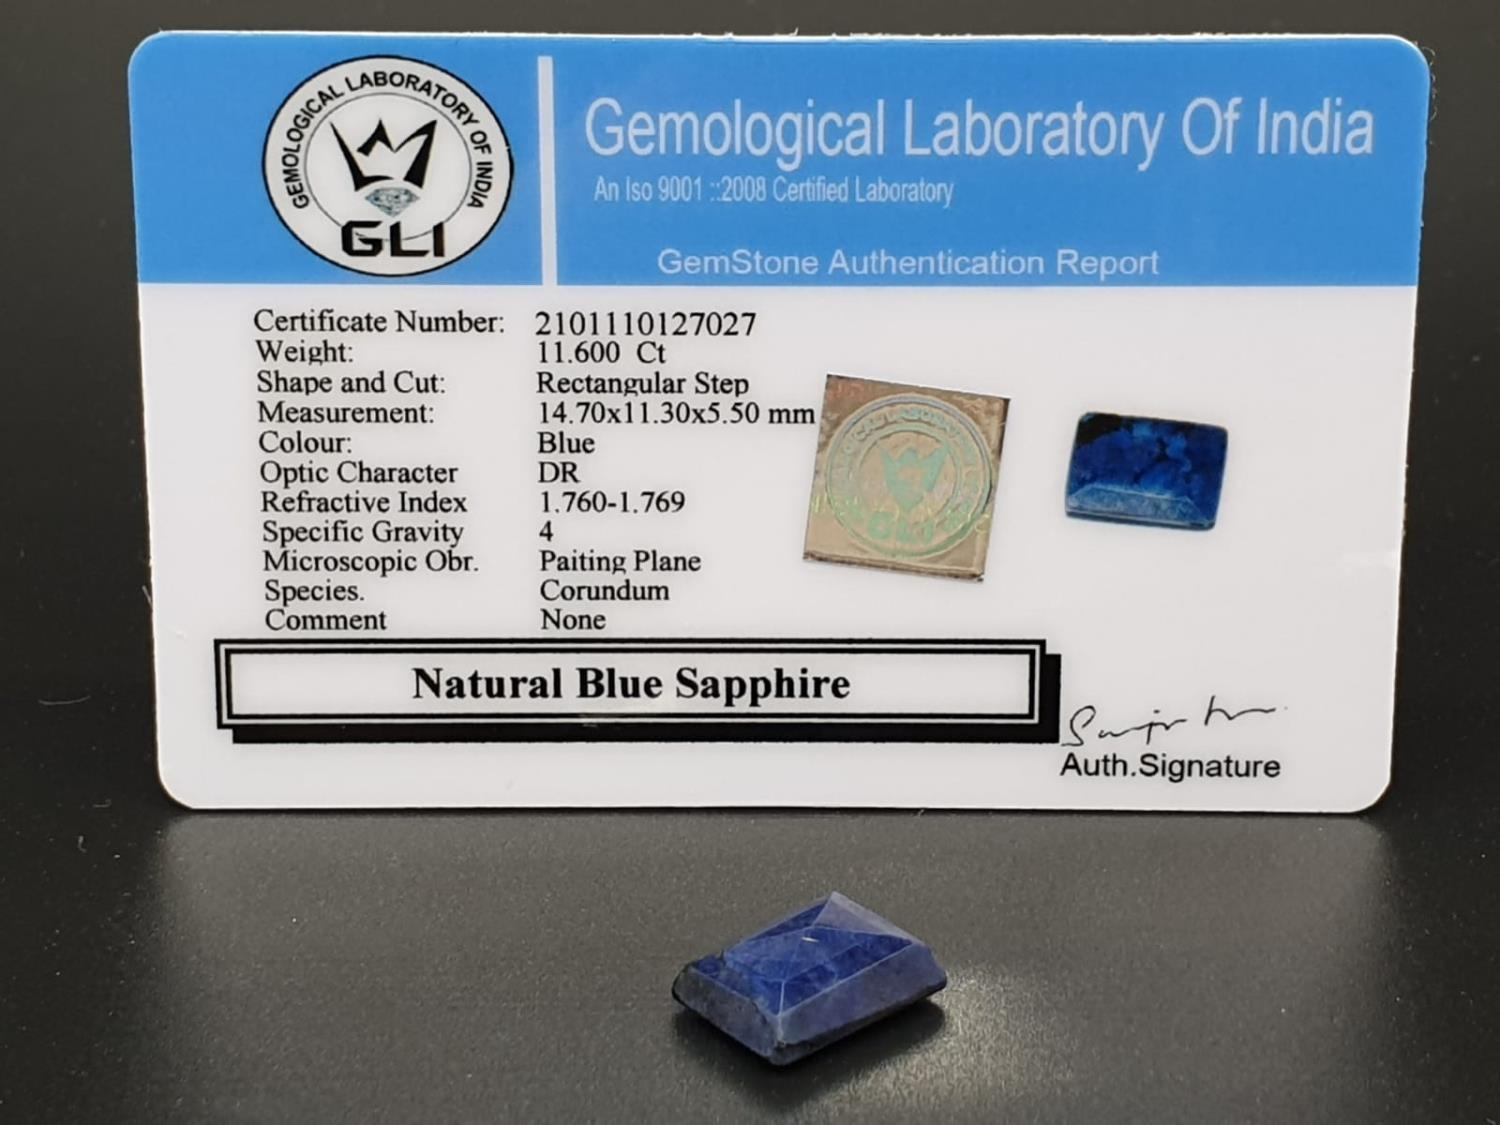 11.60 Ct Natural Blue Sapphire. Rectangular step. GLI certified - Image 3 of 3